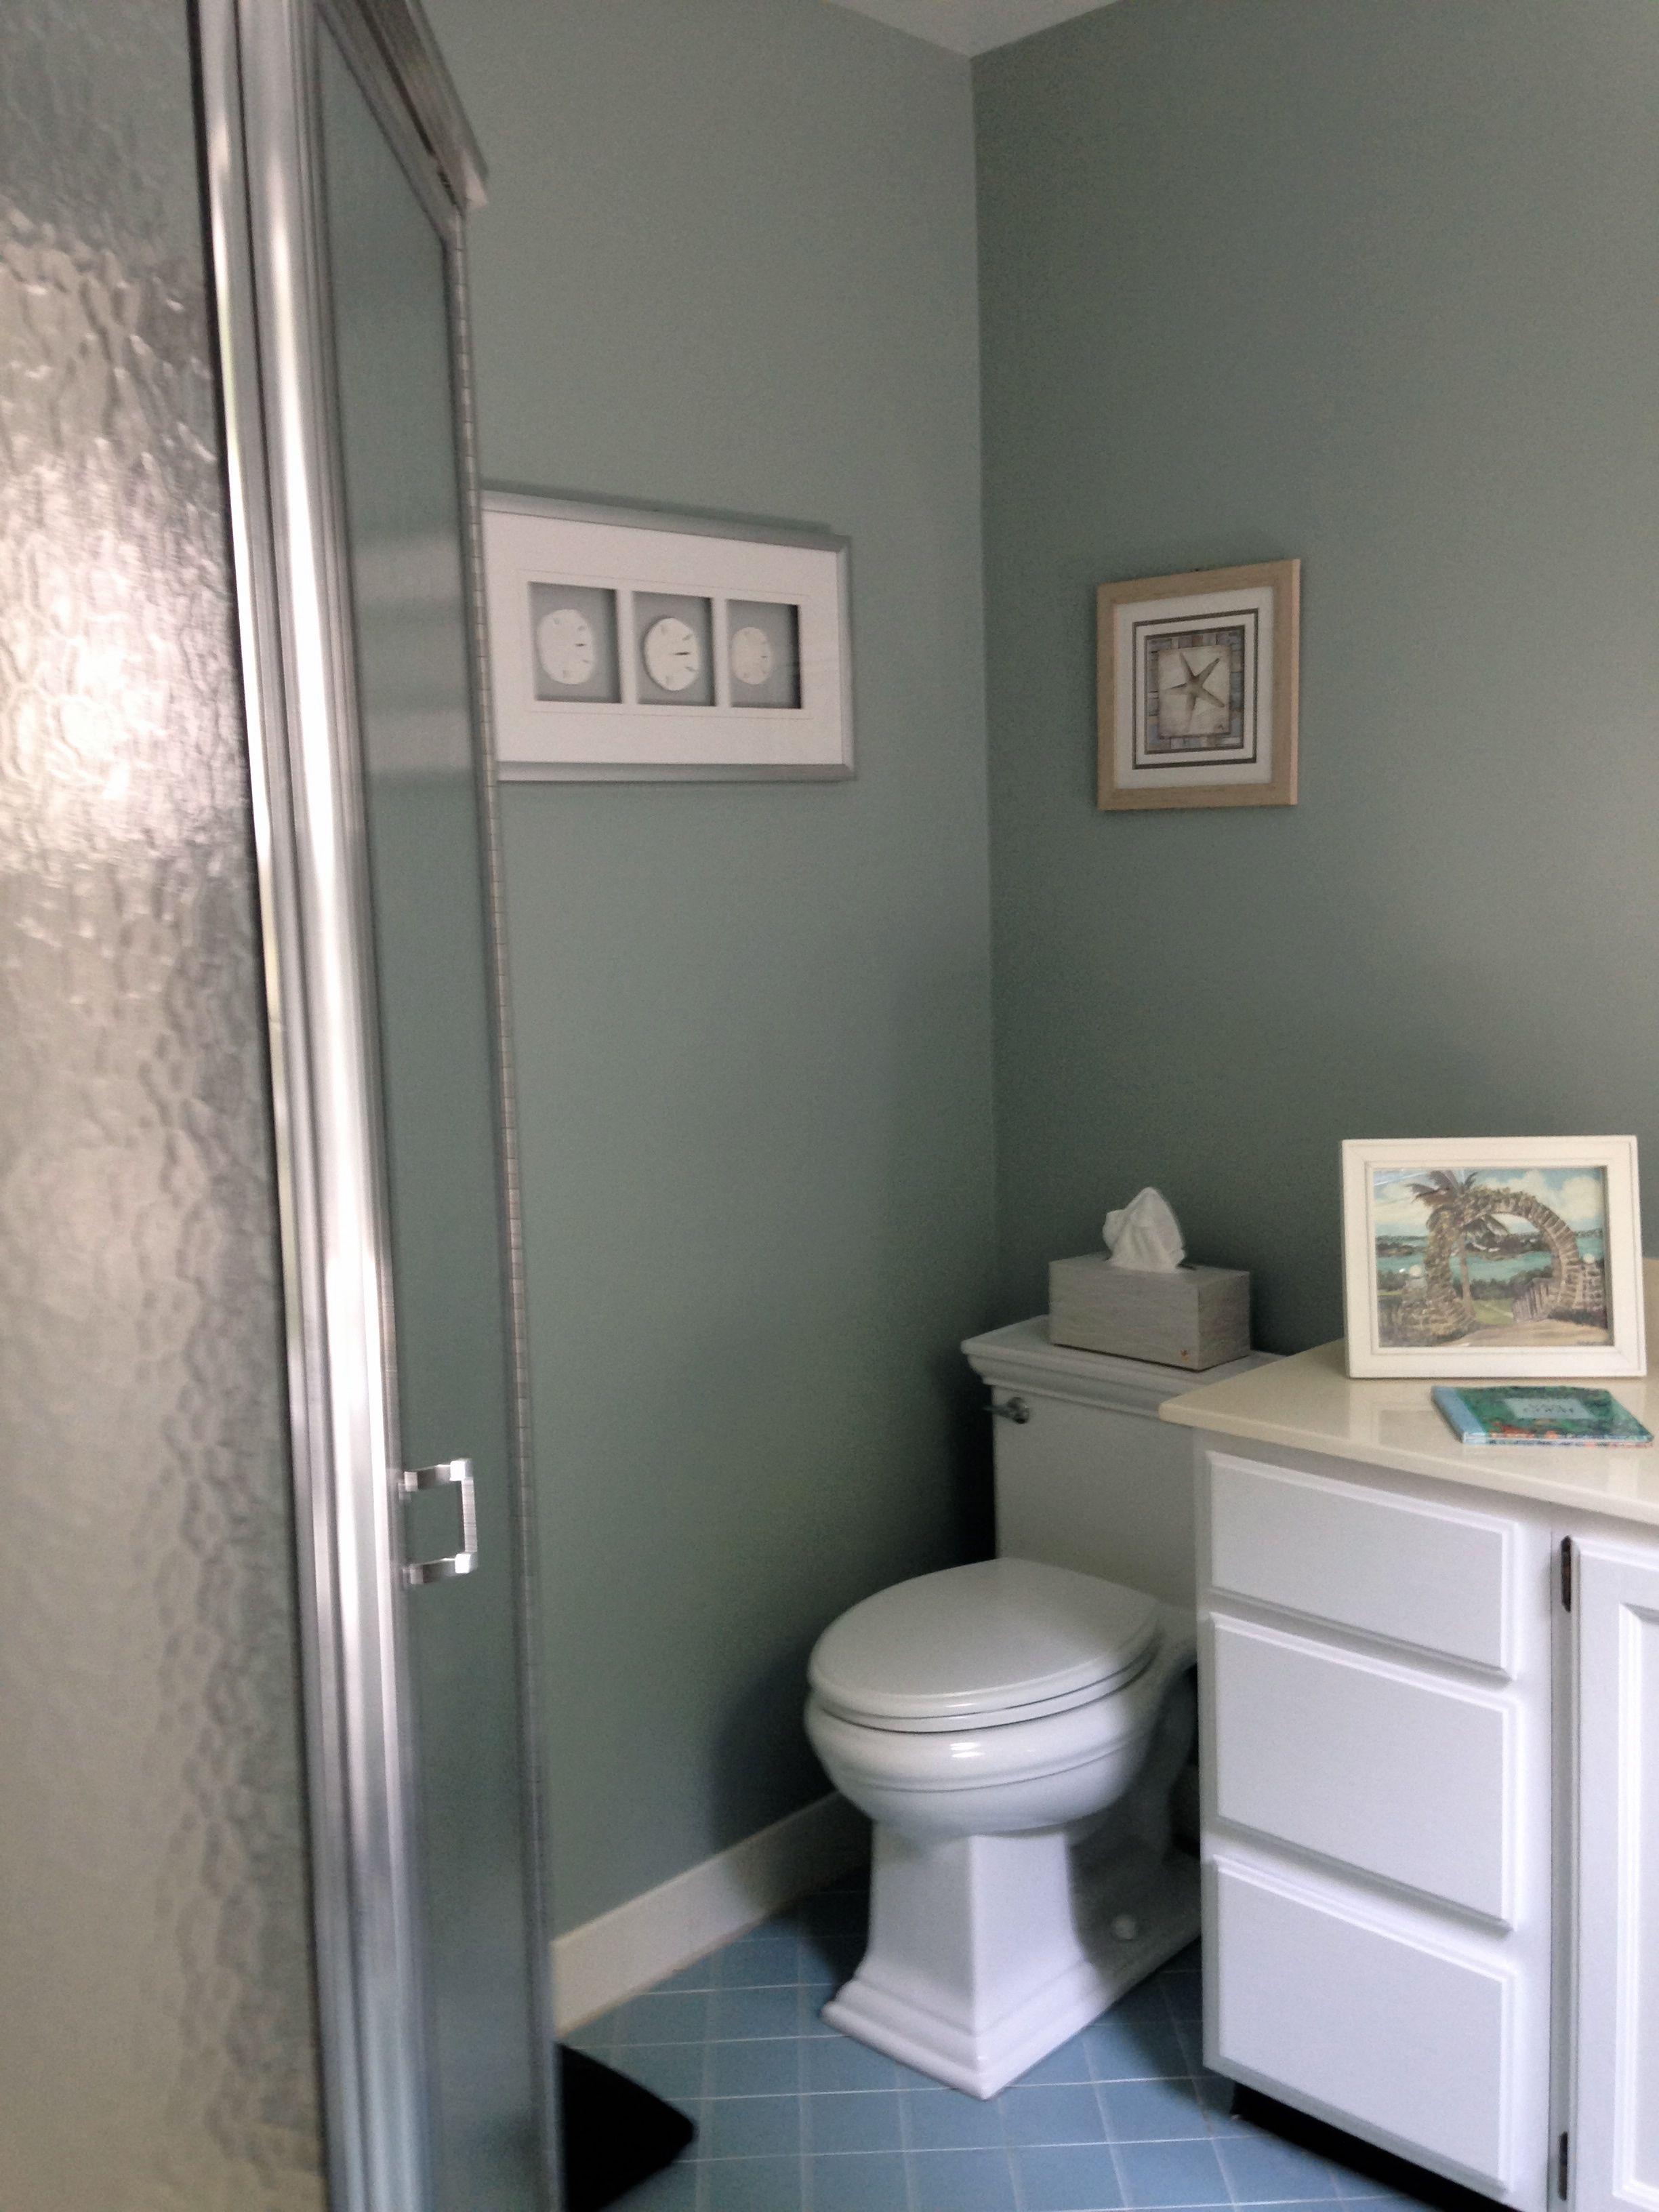 Sherwin williams silvermist maybe too dark for a windowless room